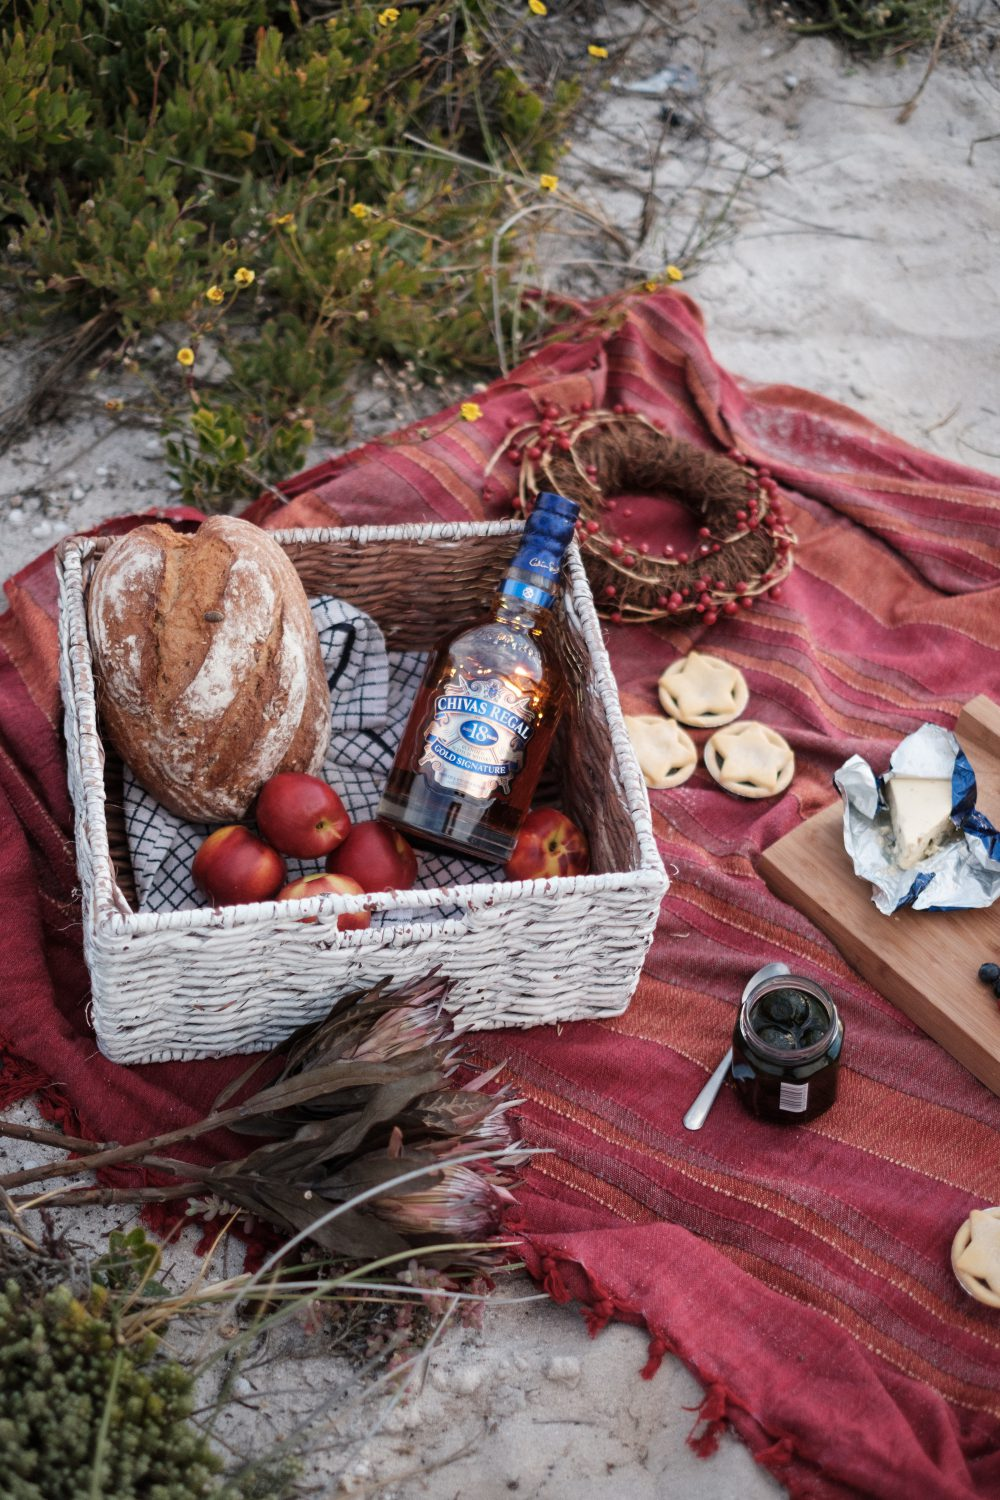 Scene of a beach picnic, shot by influencer Scrumpy Jack